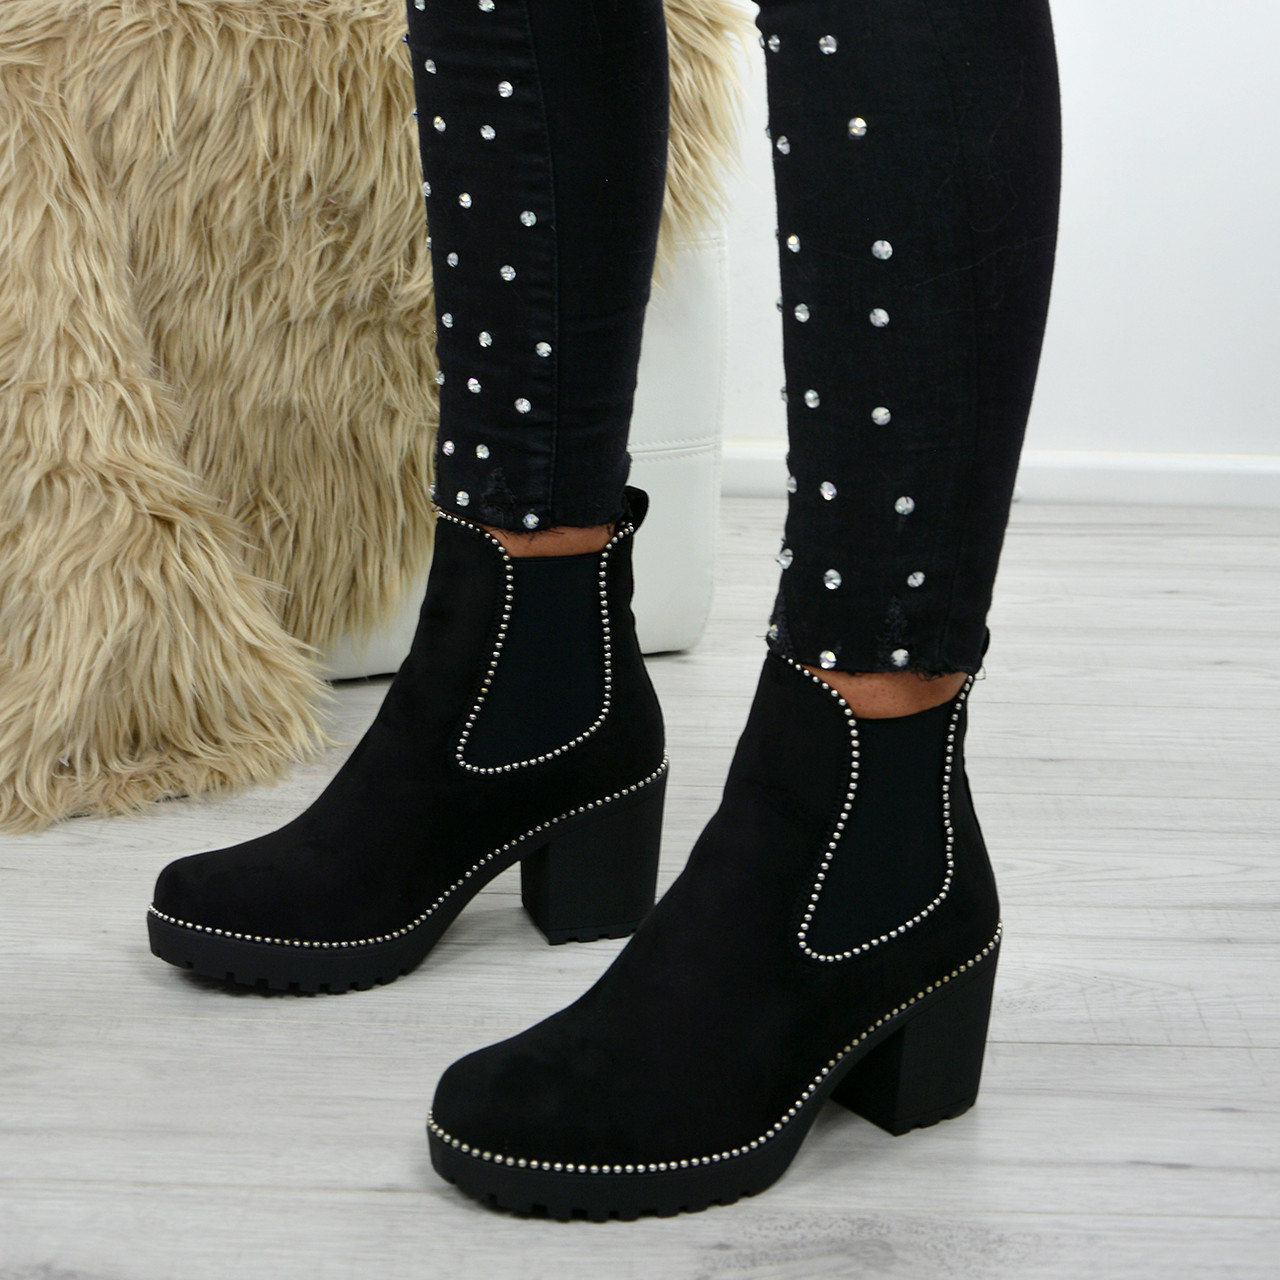 Womens Chelsea Ankle Boots Studded Chunky Block Heel Comfy Grip Sole Shoes UK3-8